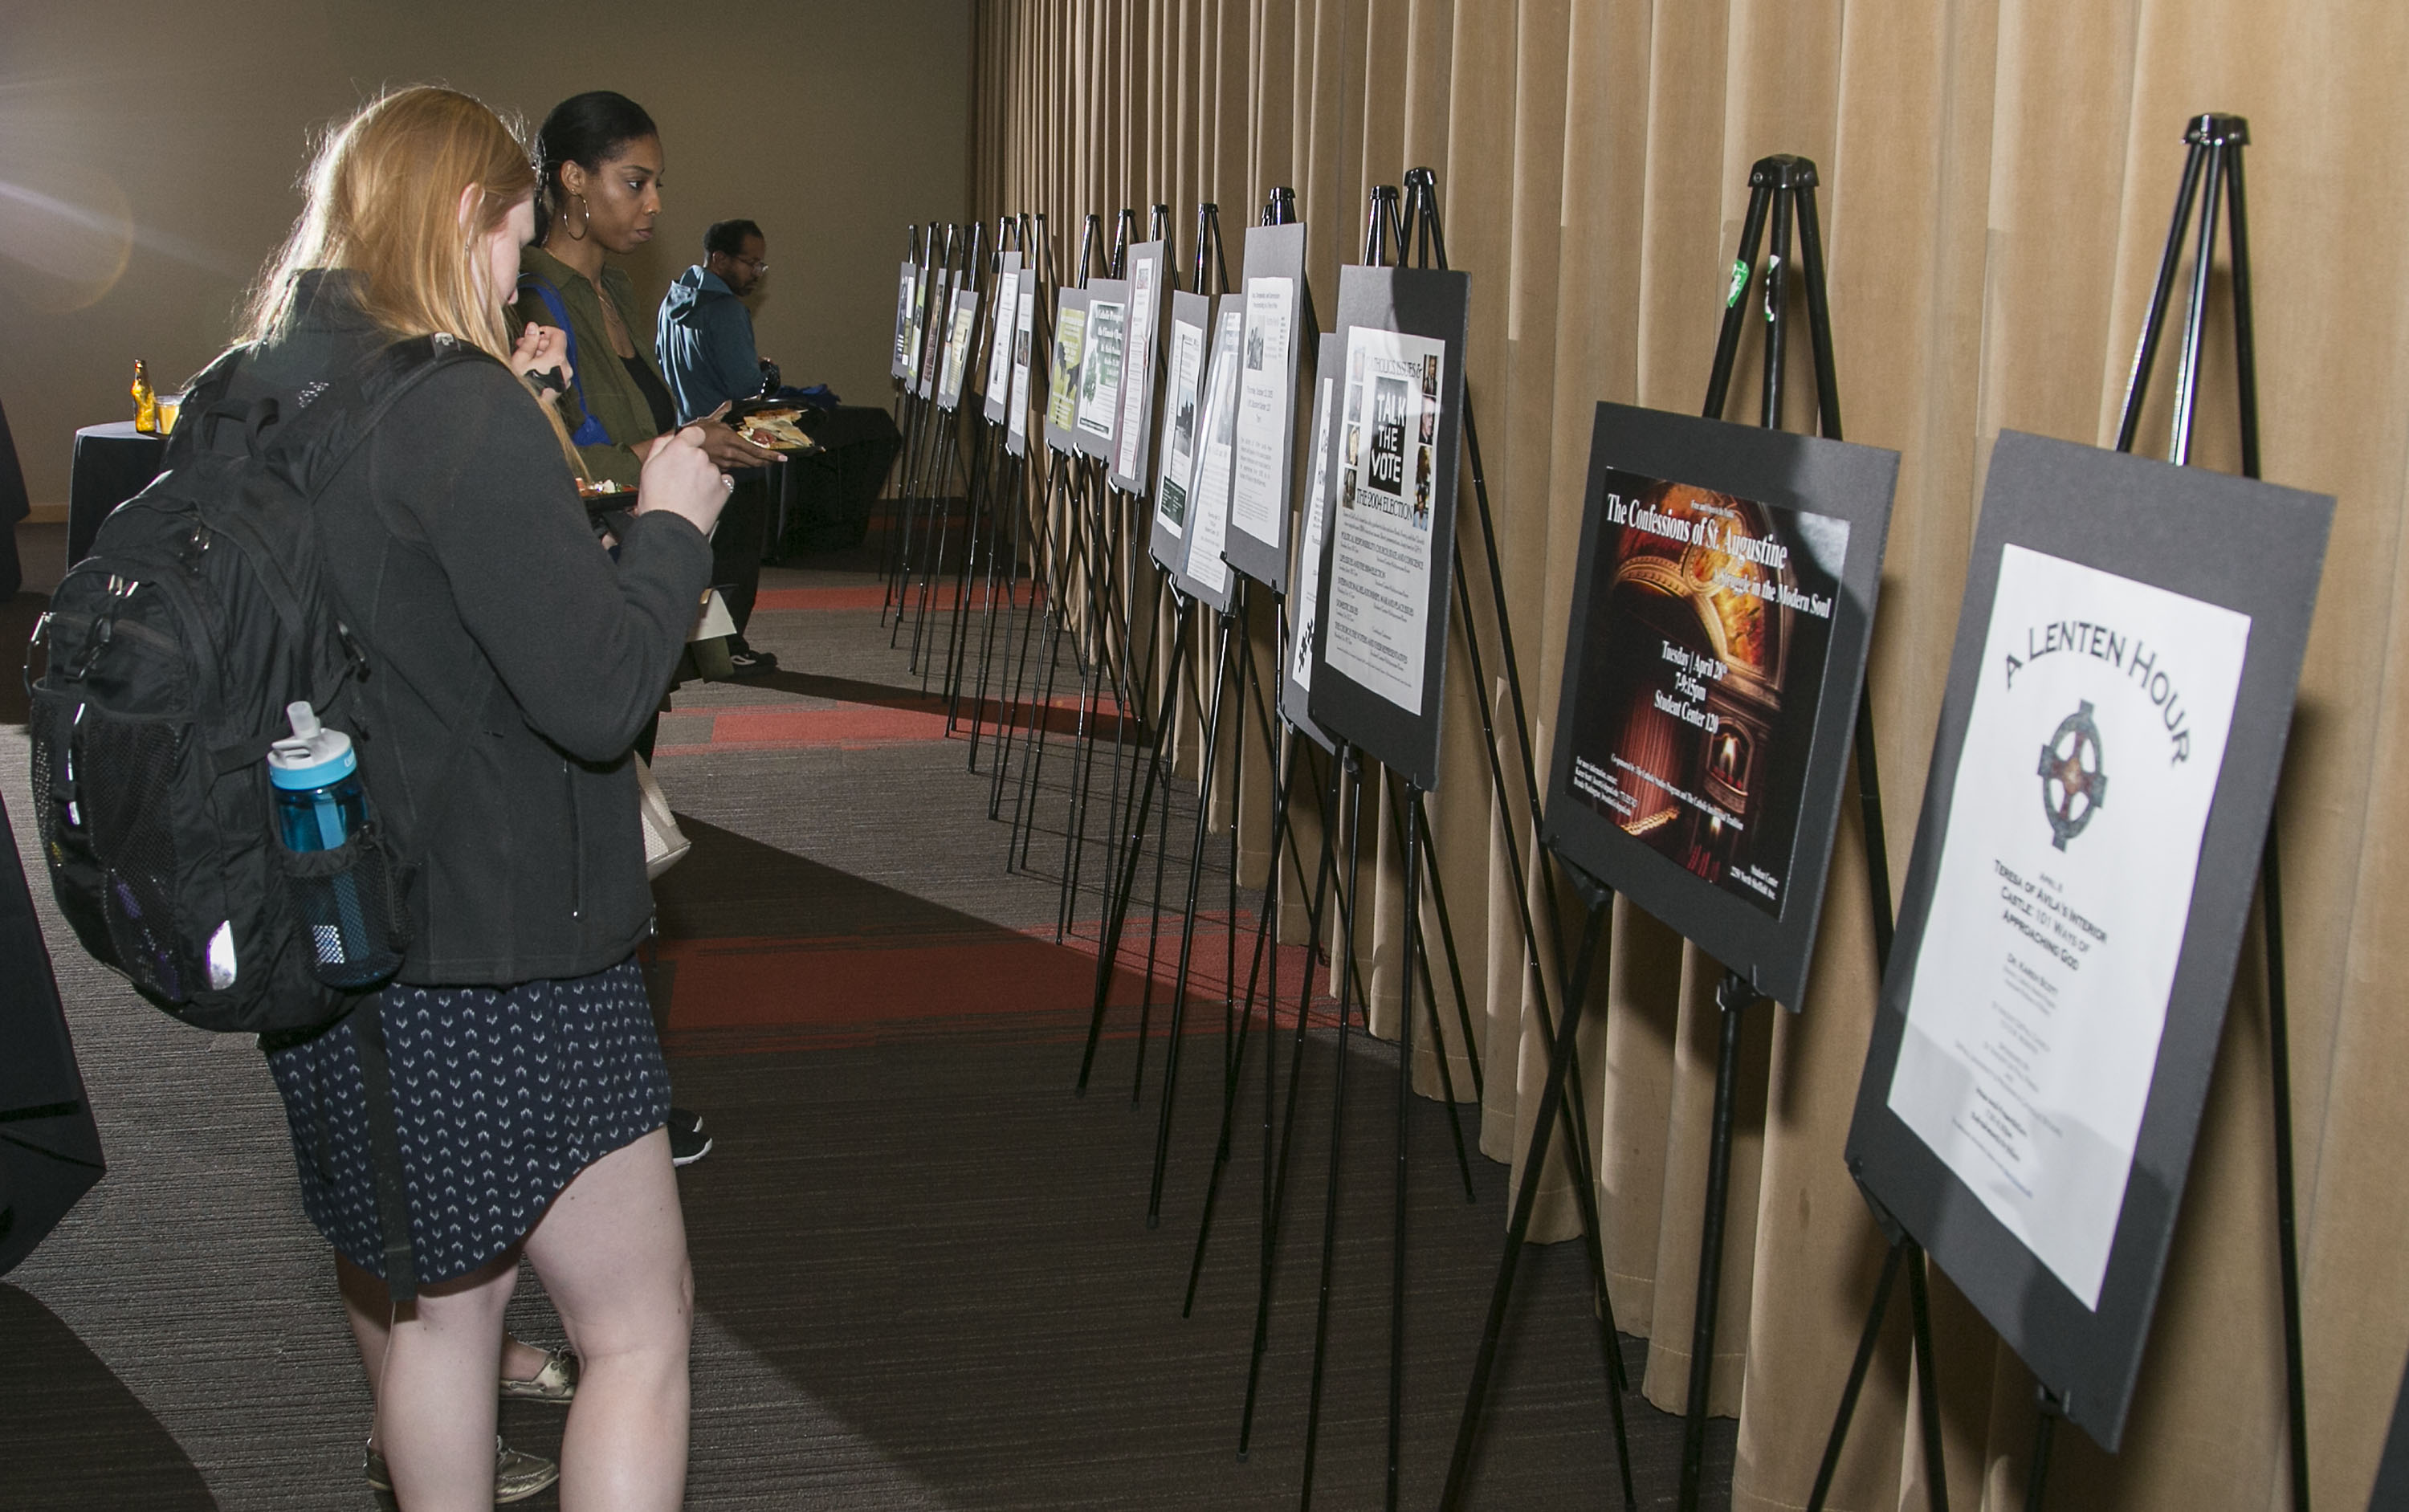 Guests admire posters of past Catholic Studies events